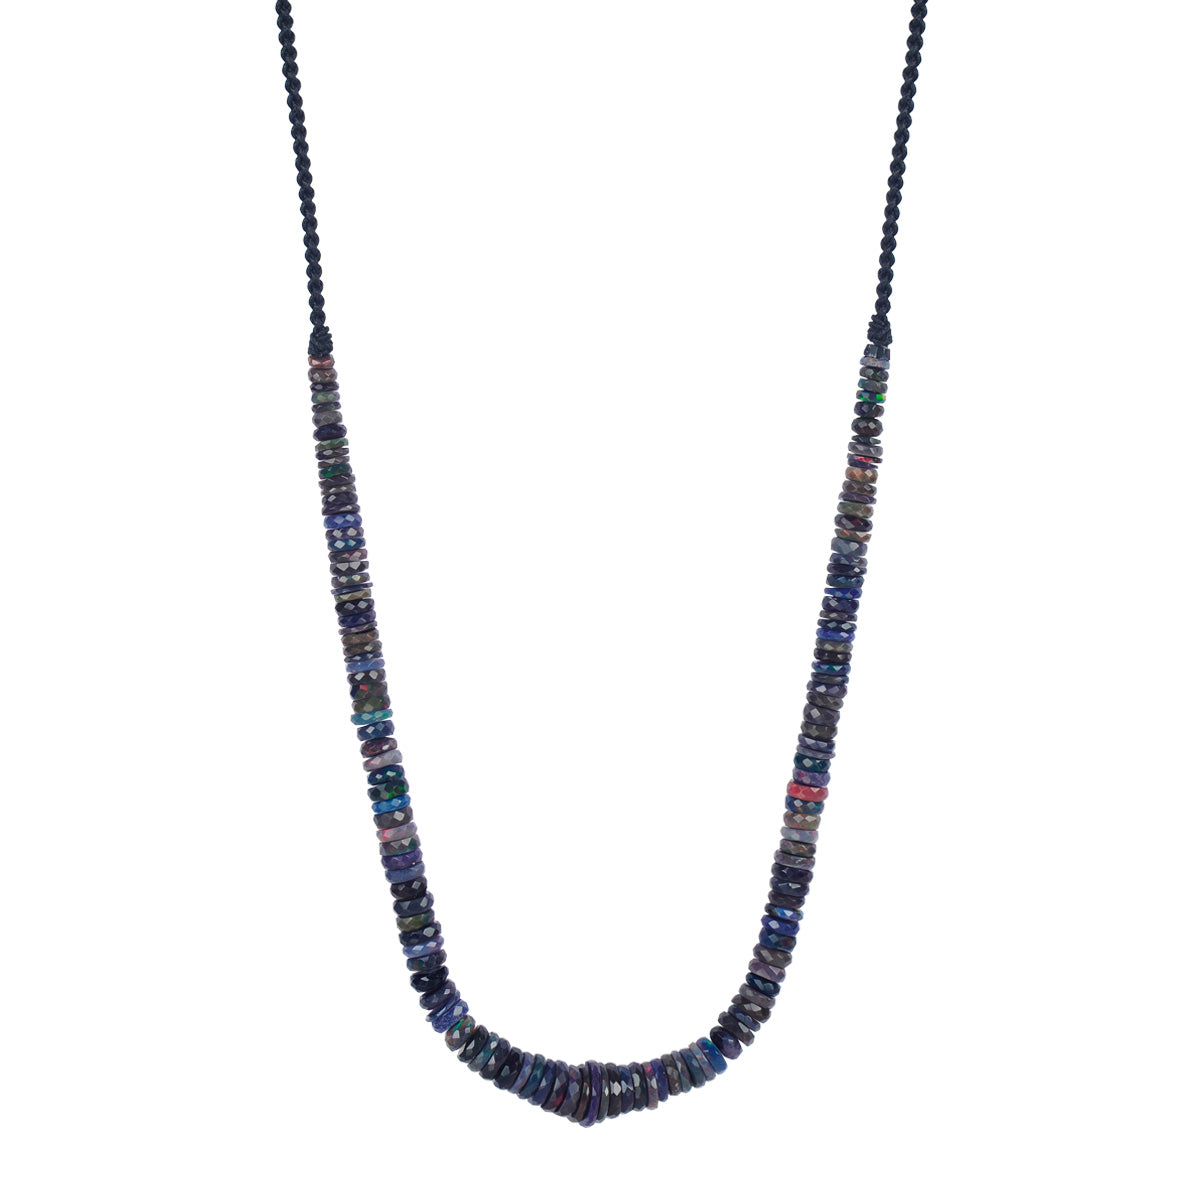 18K Gold Black Opal Rondelle Strung Necklace